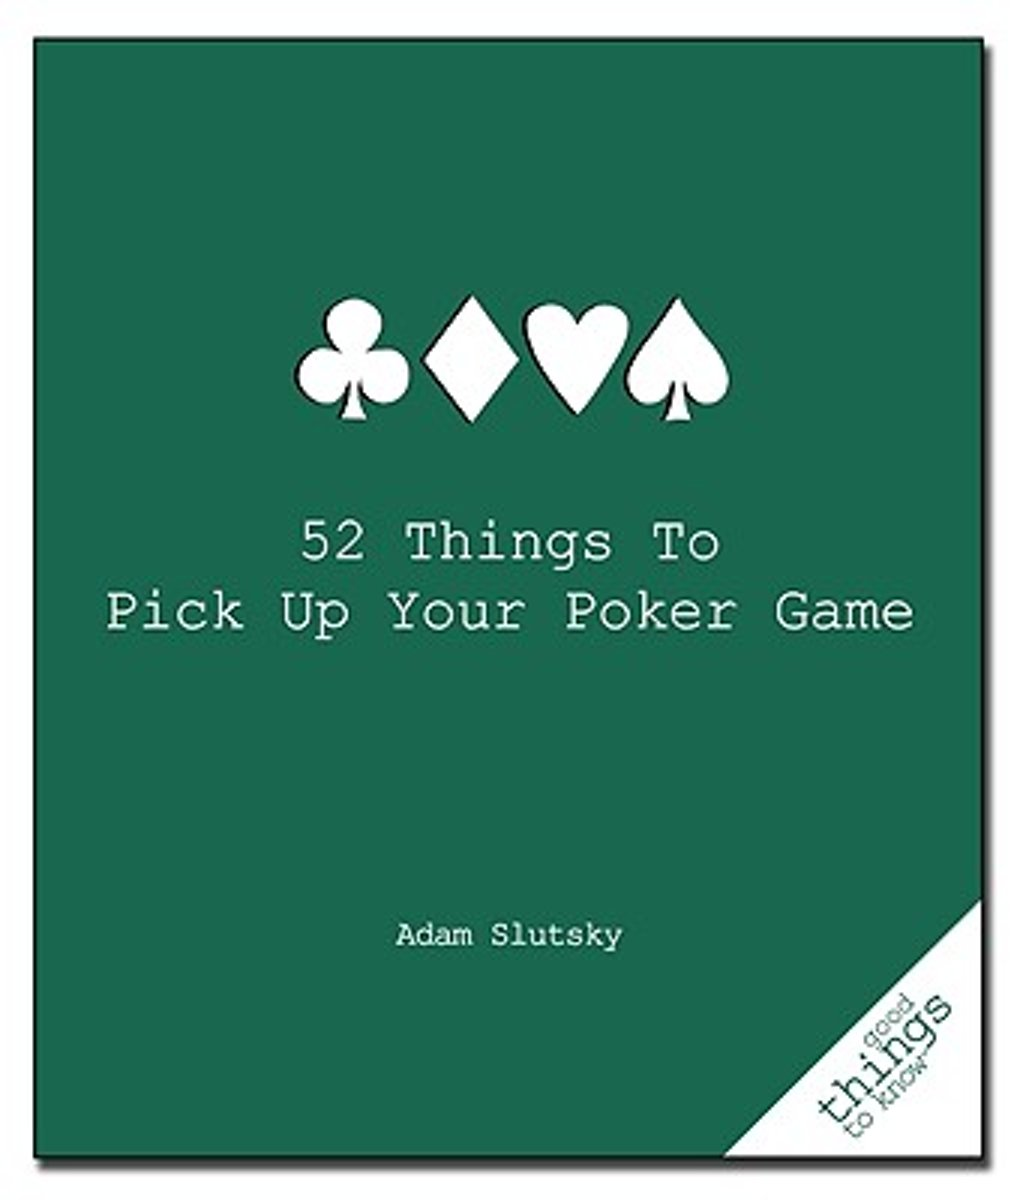 52 Things to Pick Up Your Poker Game